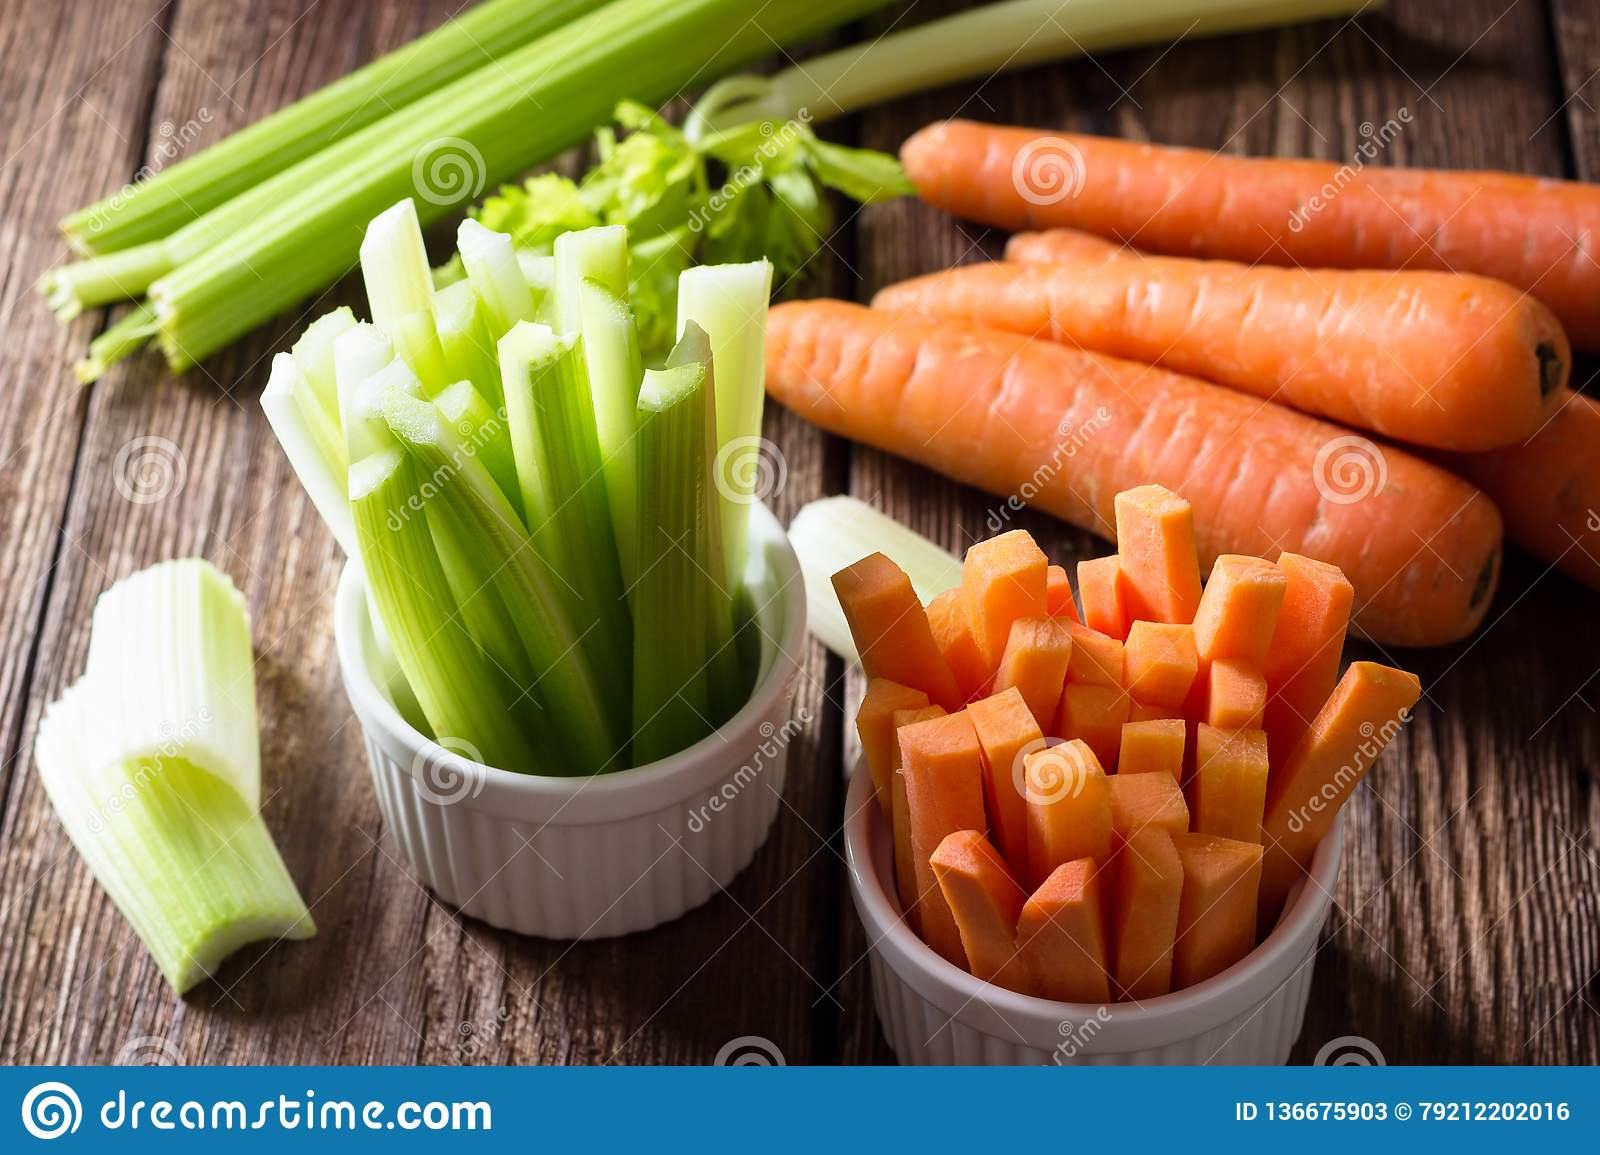 The sticks of carrots and celery